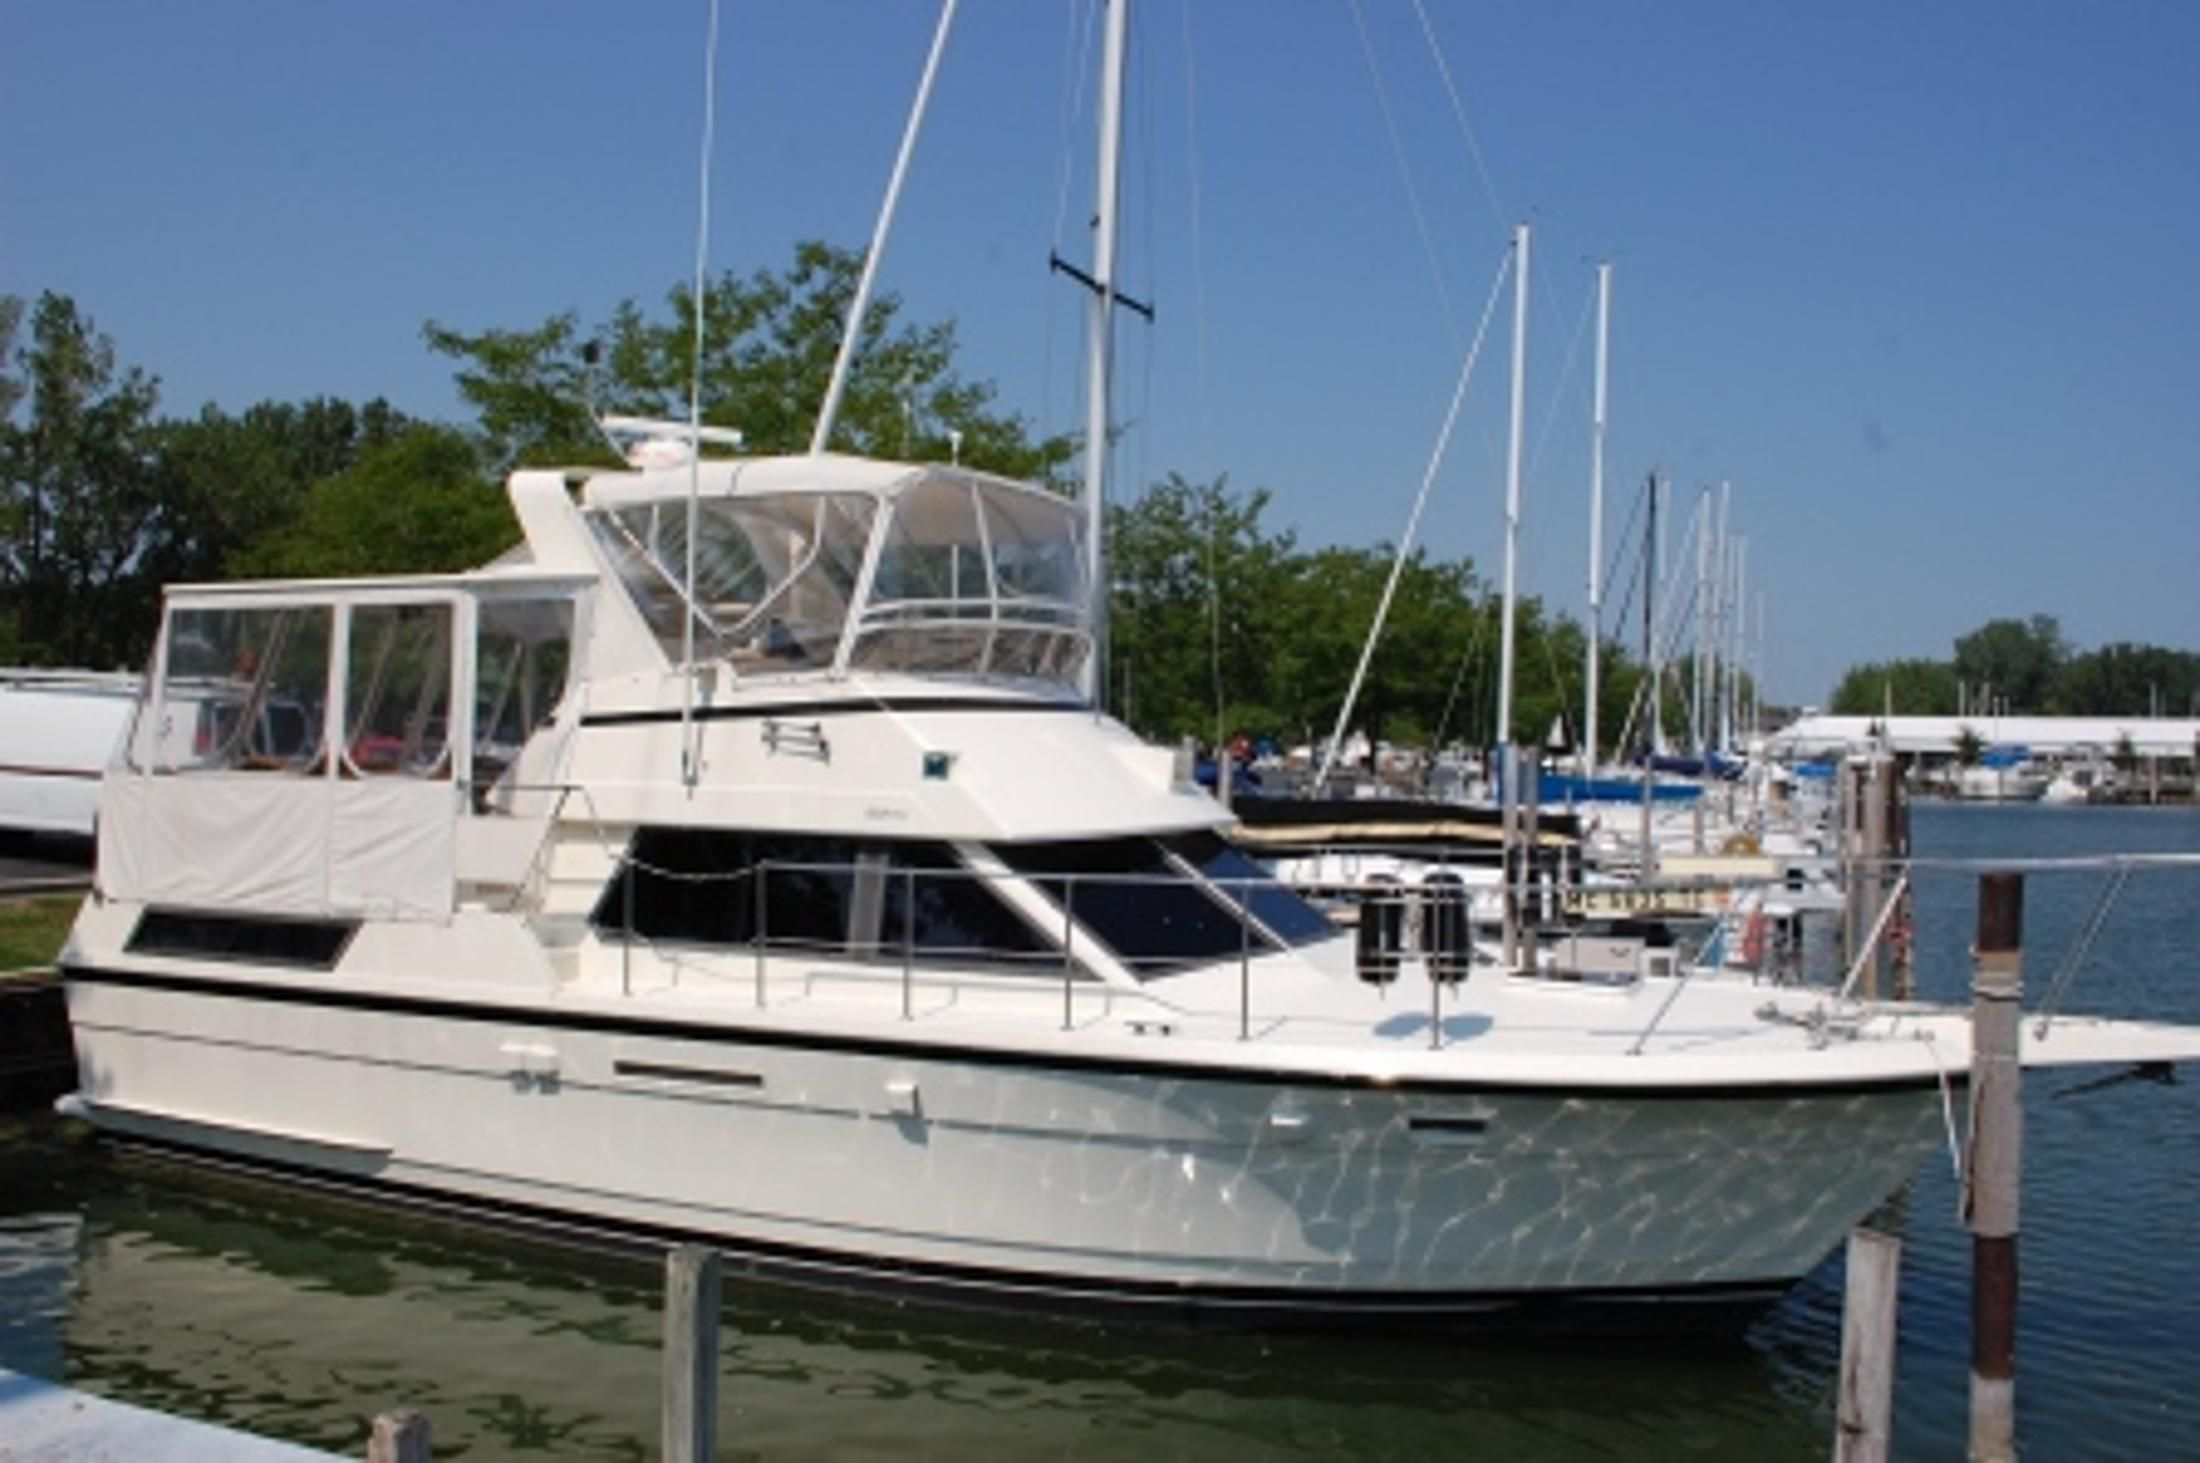 1987 hatteras 40 motor yacht power boat for sale www for Large motor yachts for sale